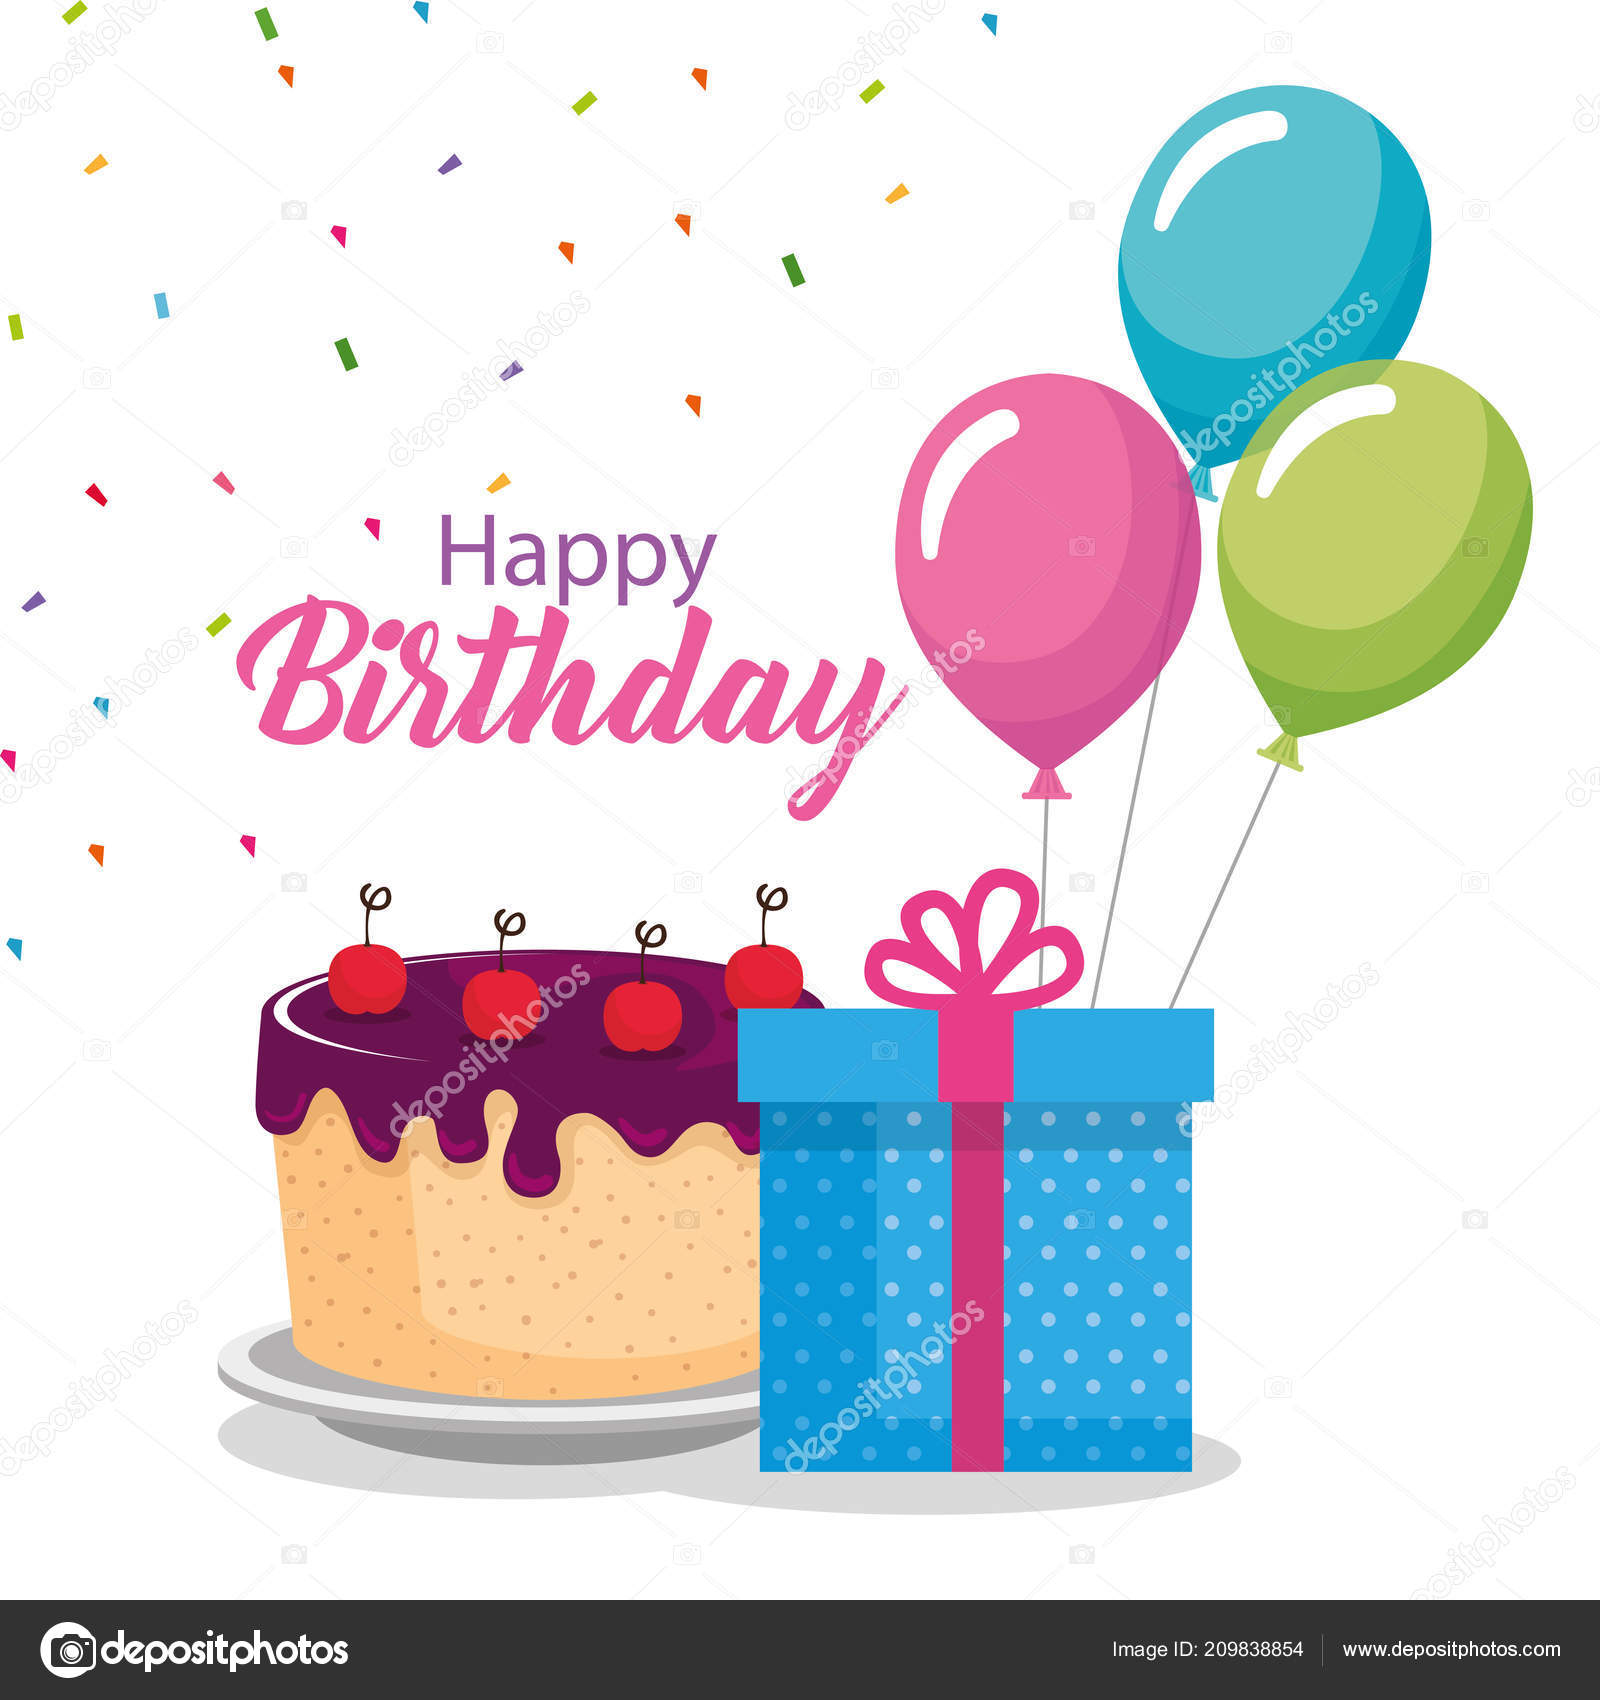 Happy Birthday Card With Cake And Balloons Helium Image